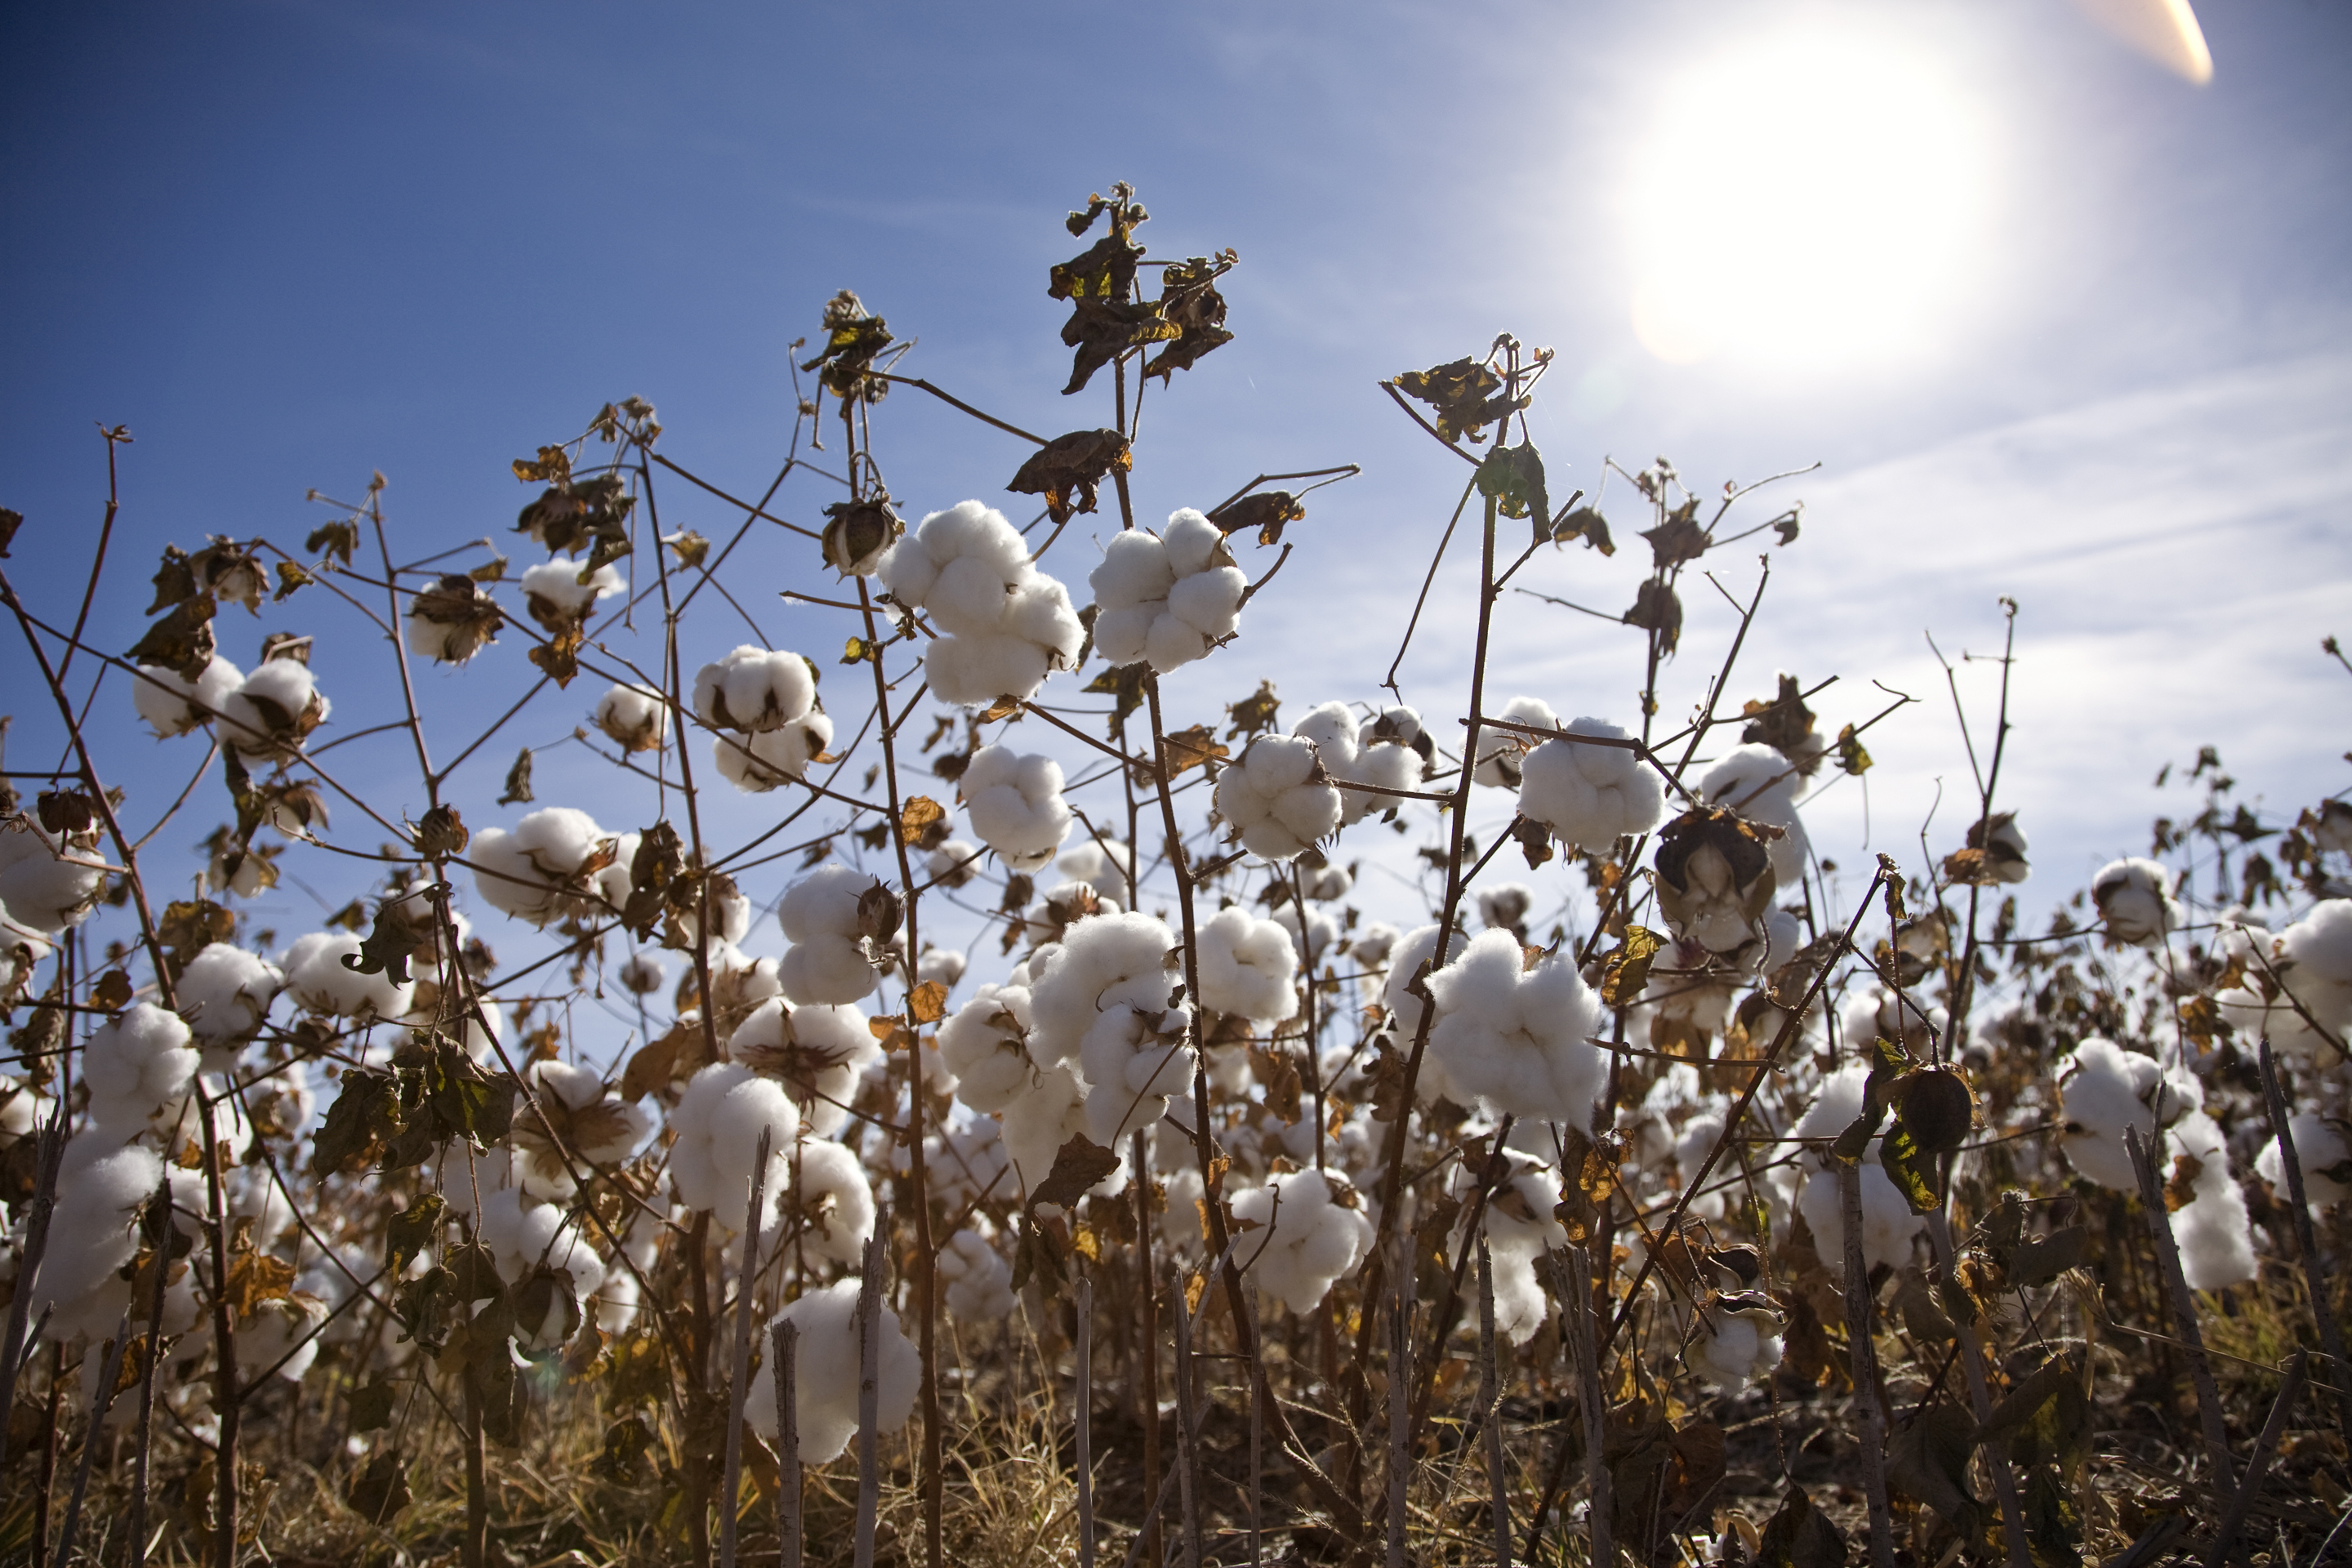 cotton_field2_1295593200